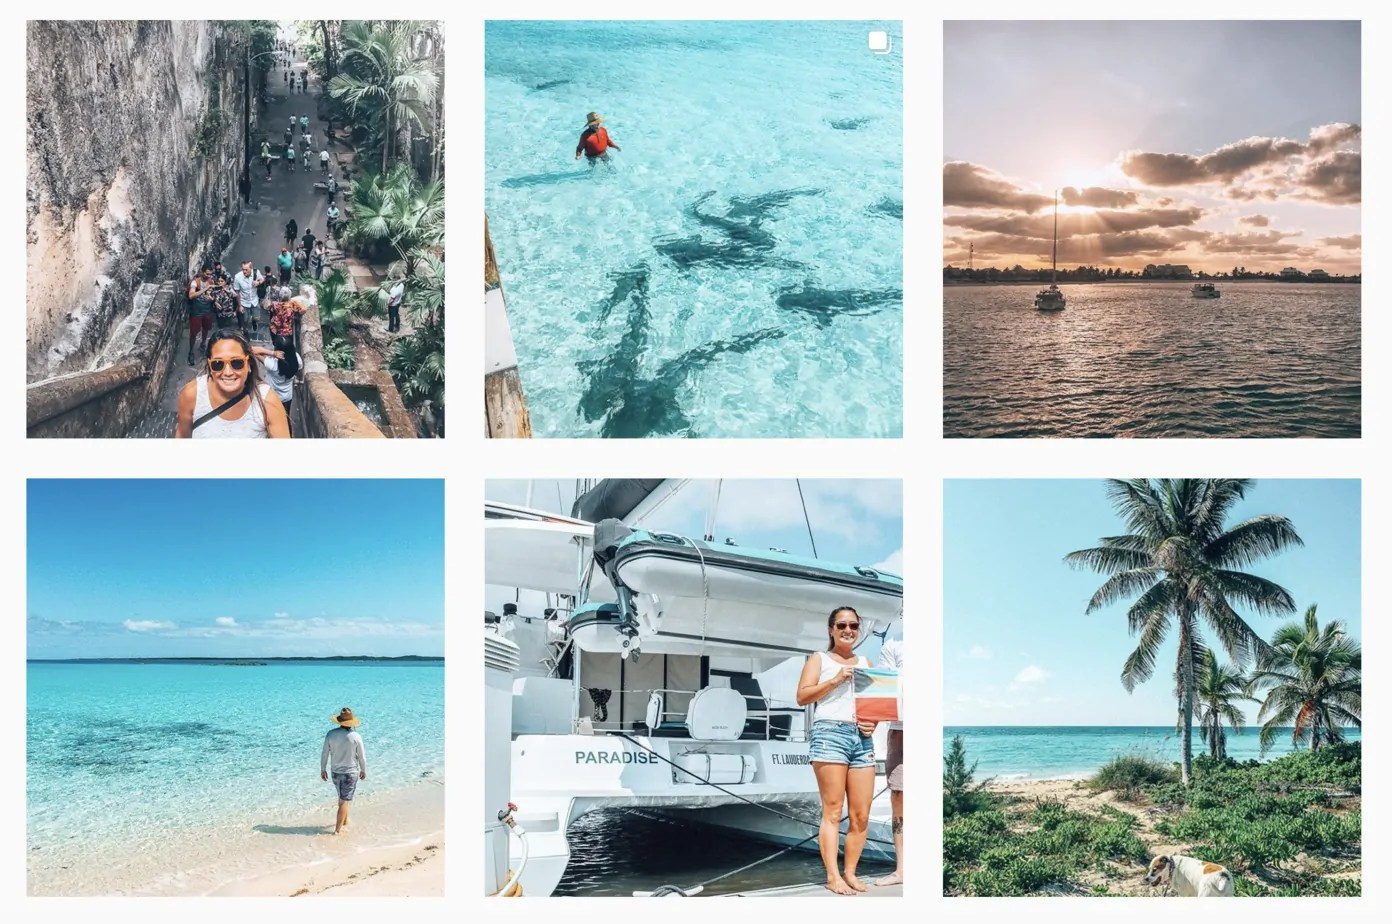 This woman used her blog as a debt free side hustle to pay off student loans. Now she travels the world by land and sea making a full-time blogging income.